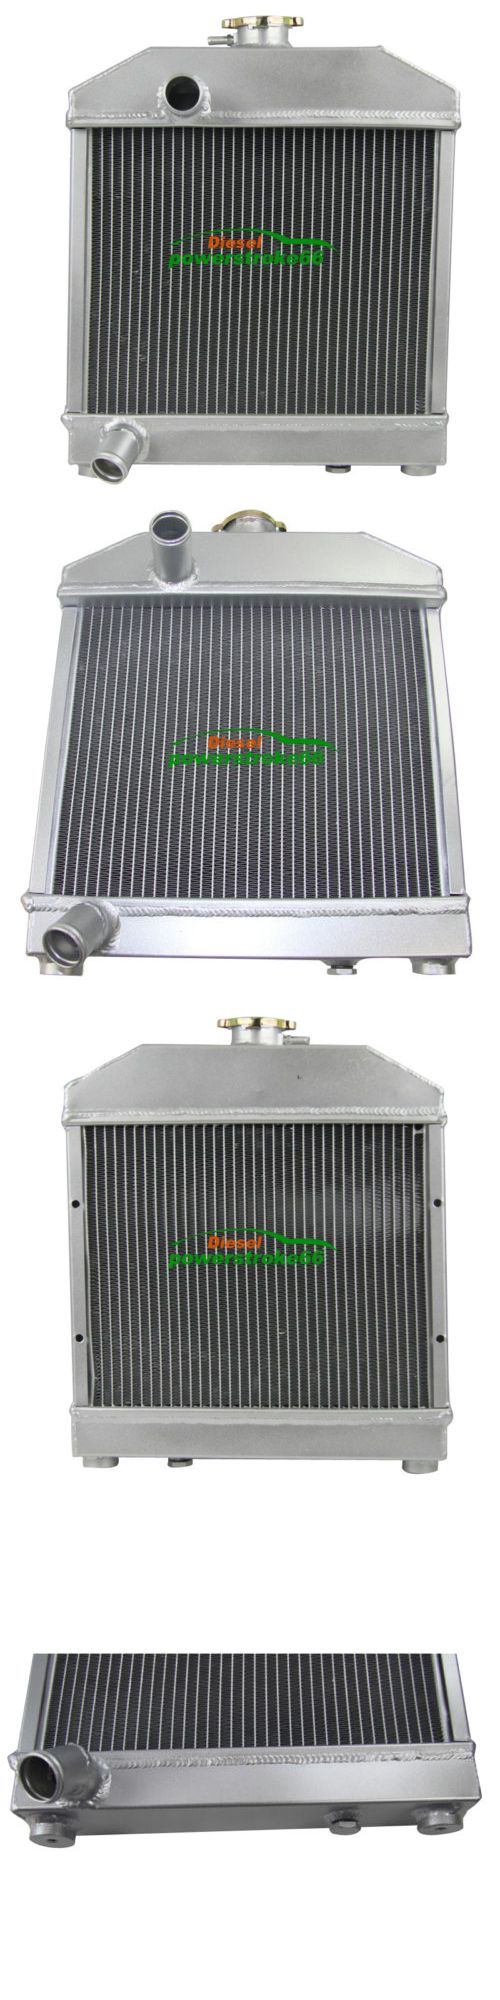 heavy equipment: 3Row Great New Radiator For 15221-72060 Kubota L175 Tractor 1522172060 Brand BUY IT NOW ONLY: $149.0